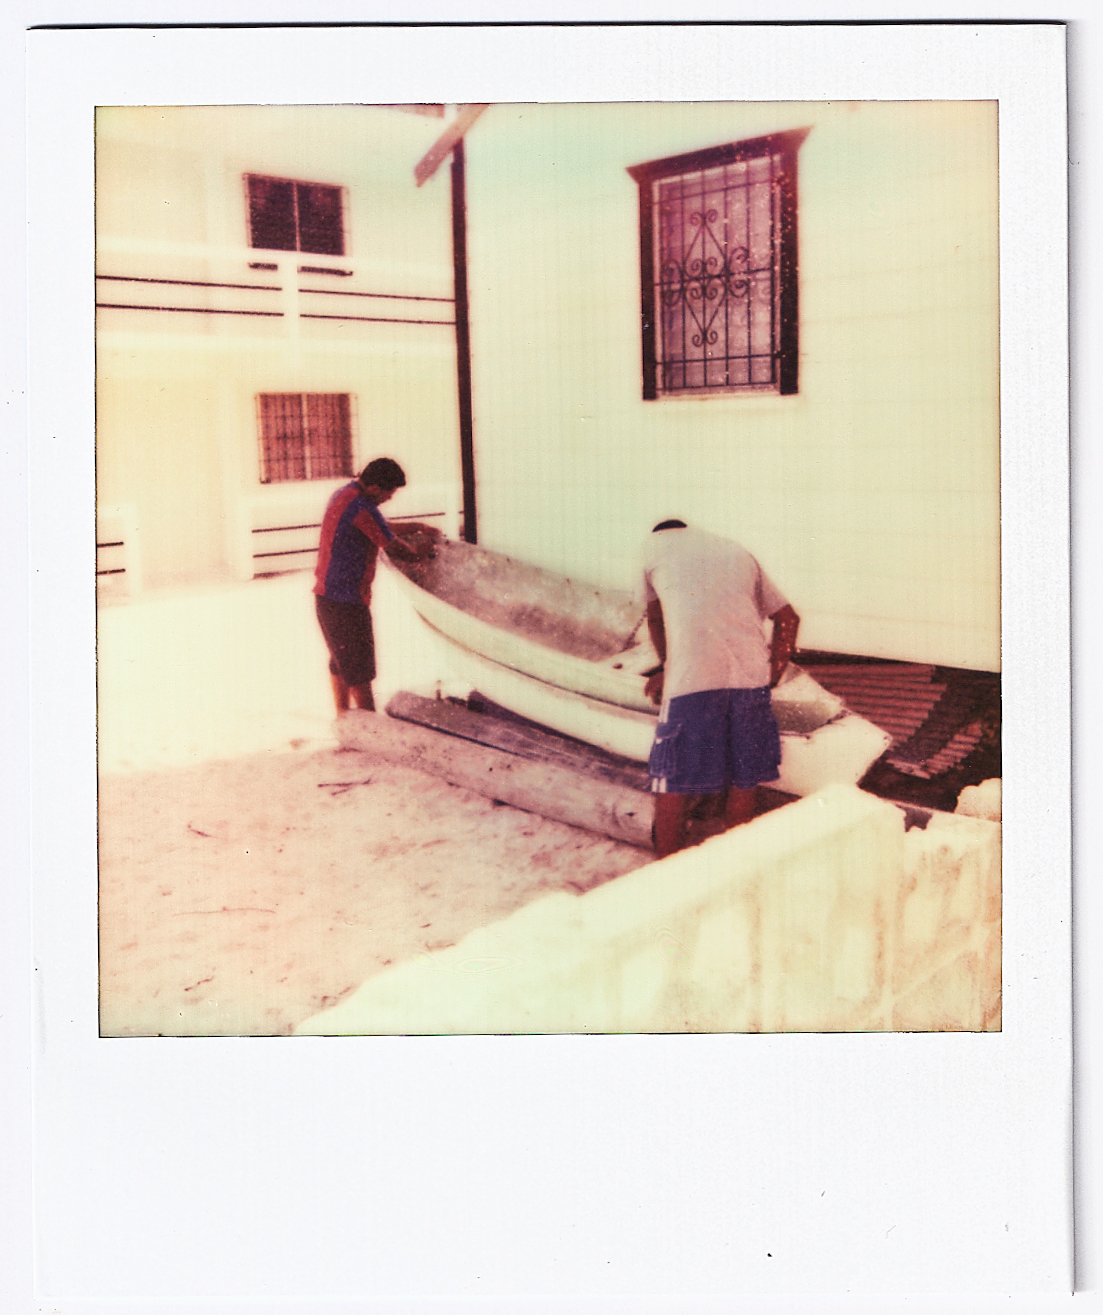 BELIZE_POLAROIDS02-3